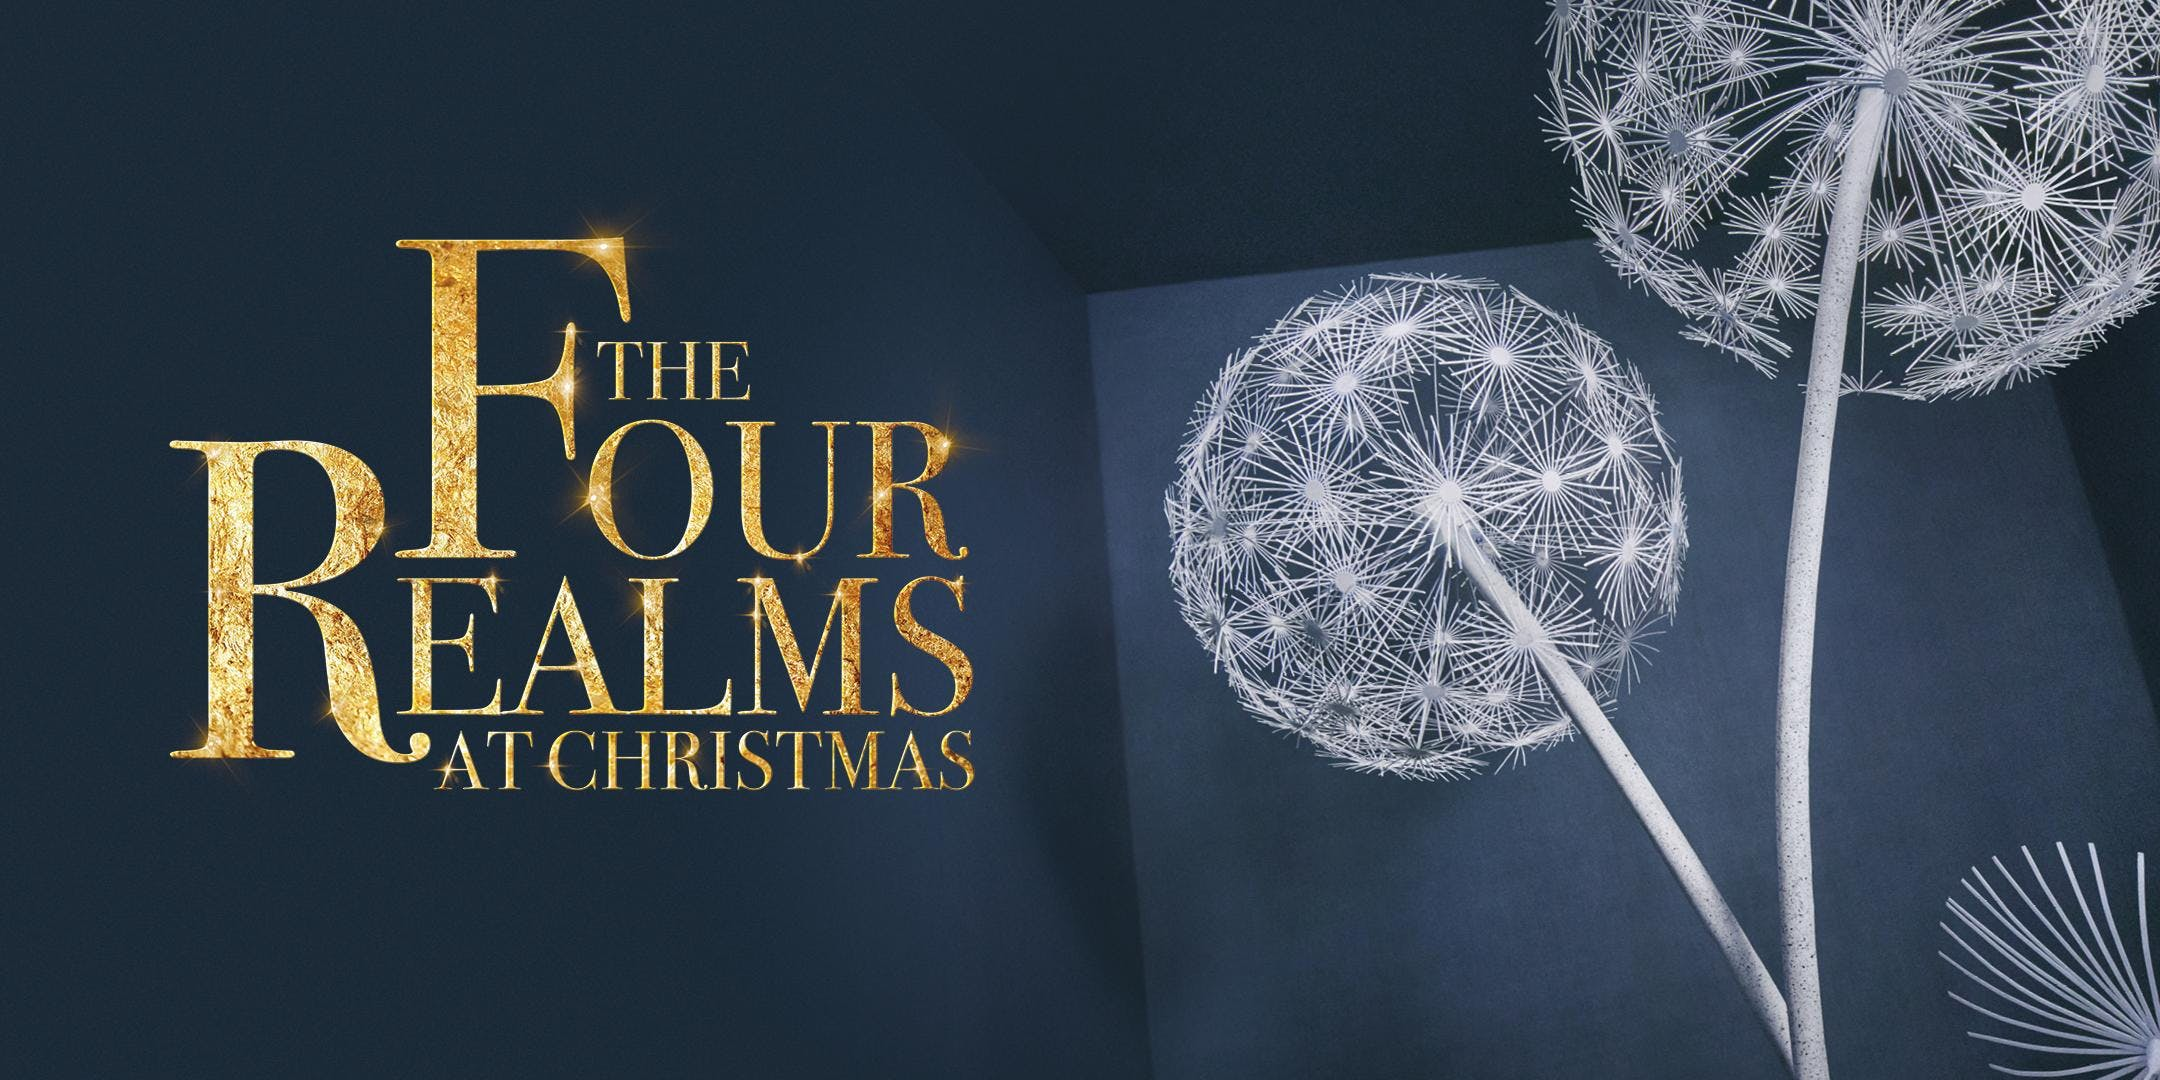 The Four Realms at Christmas